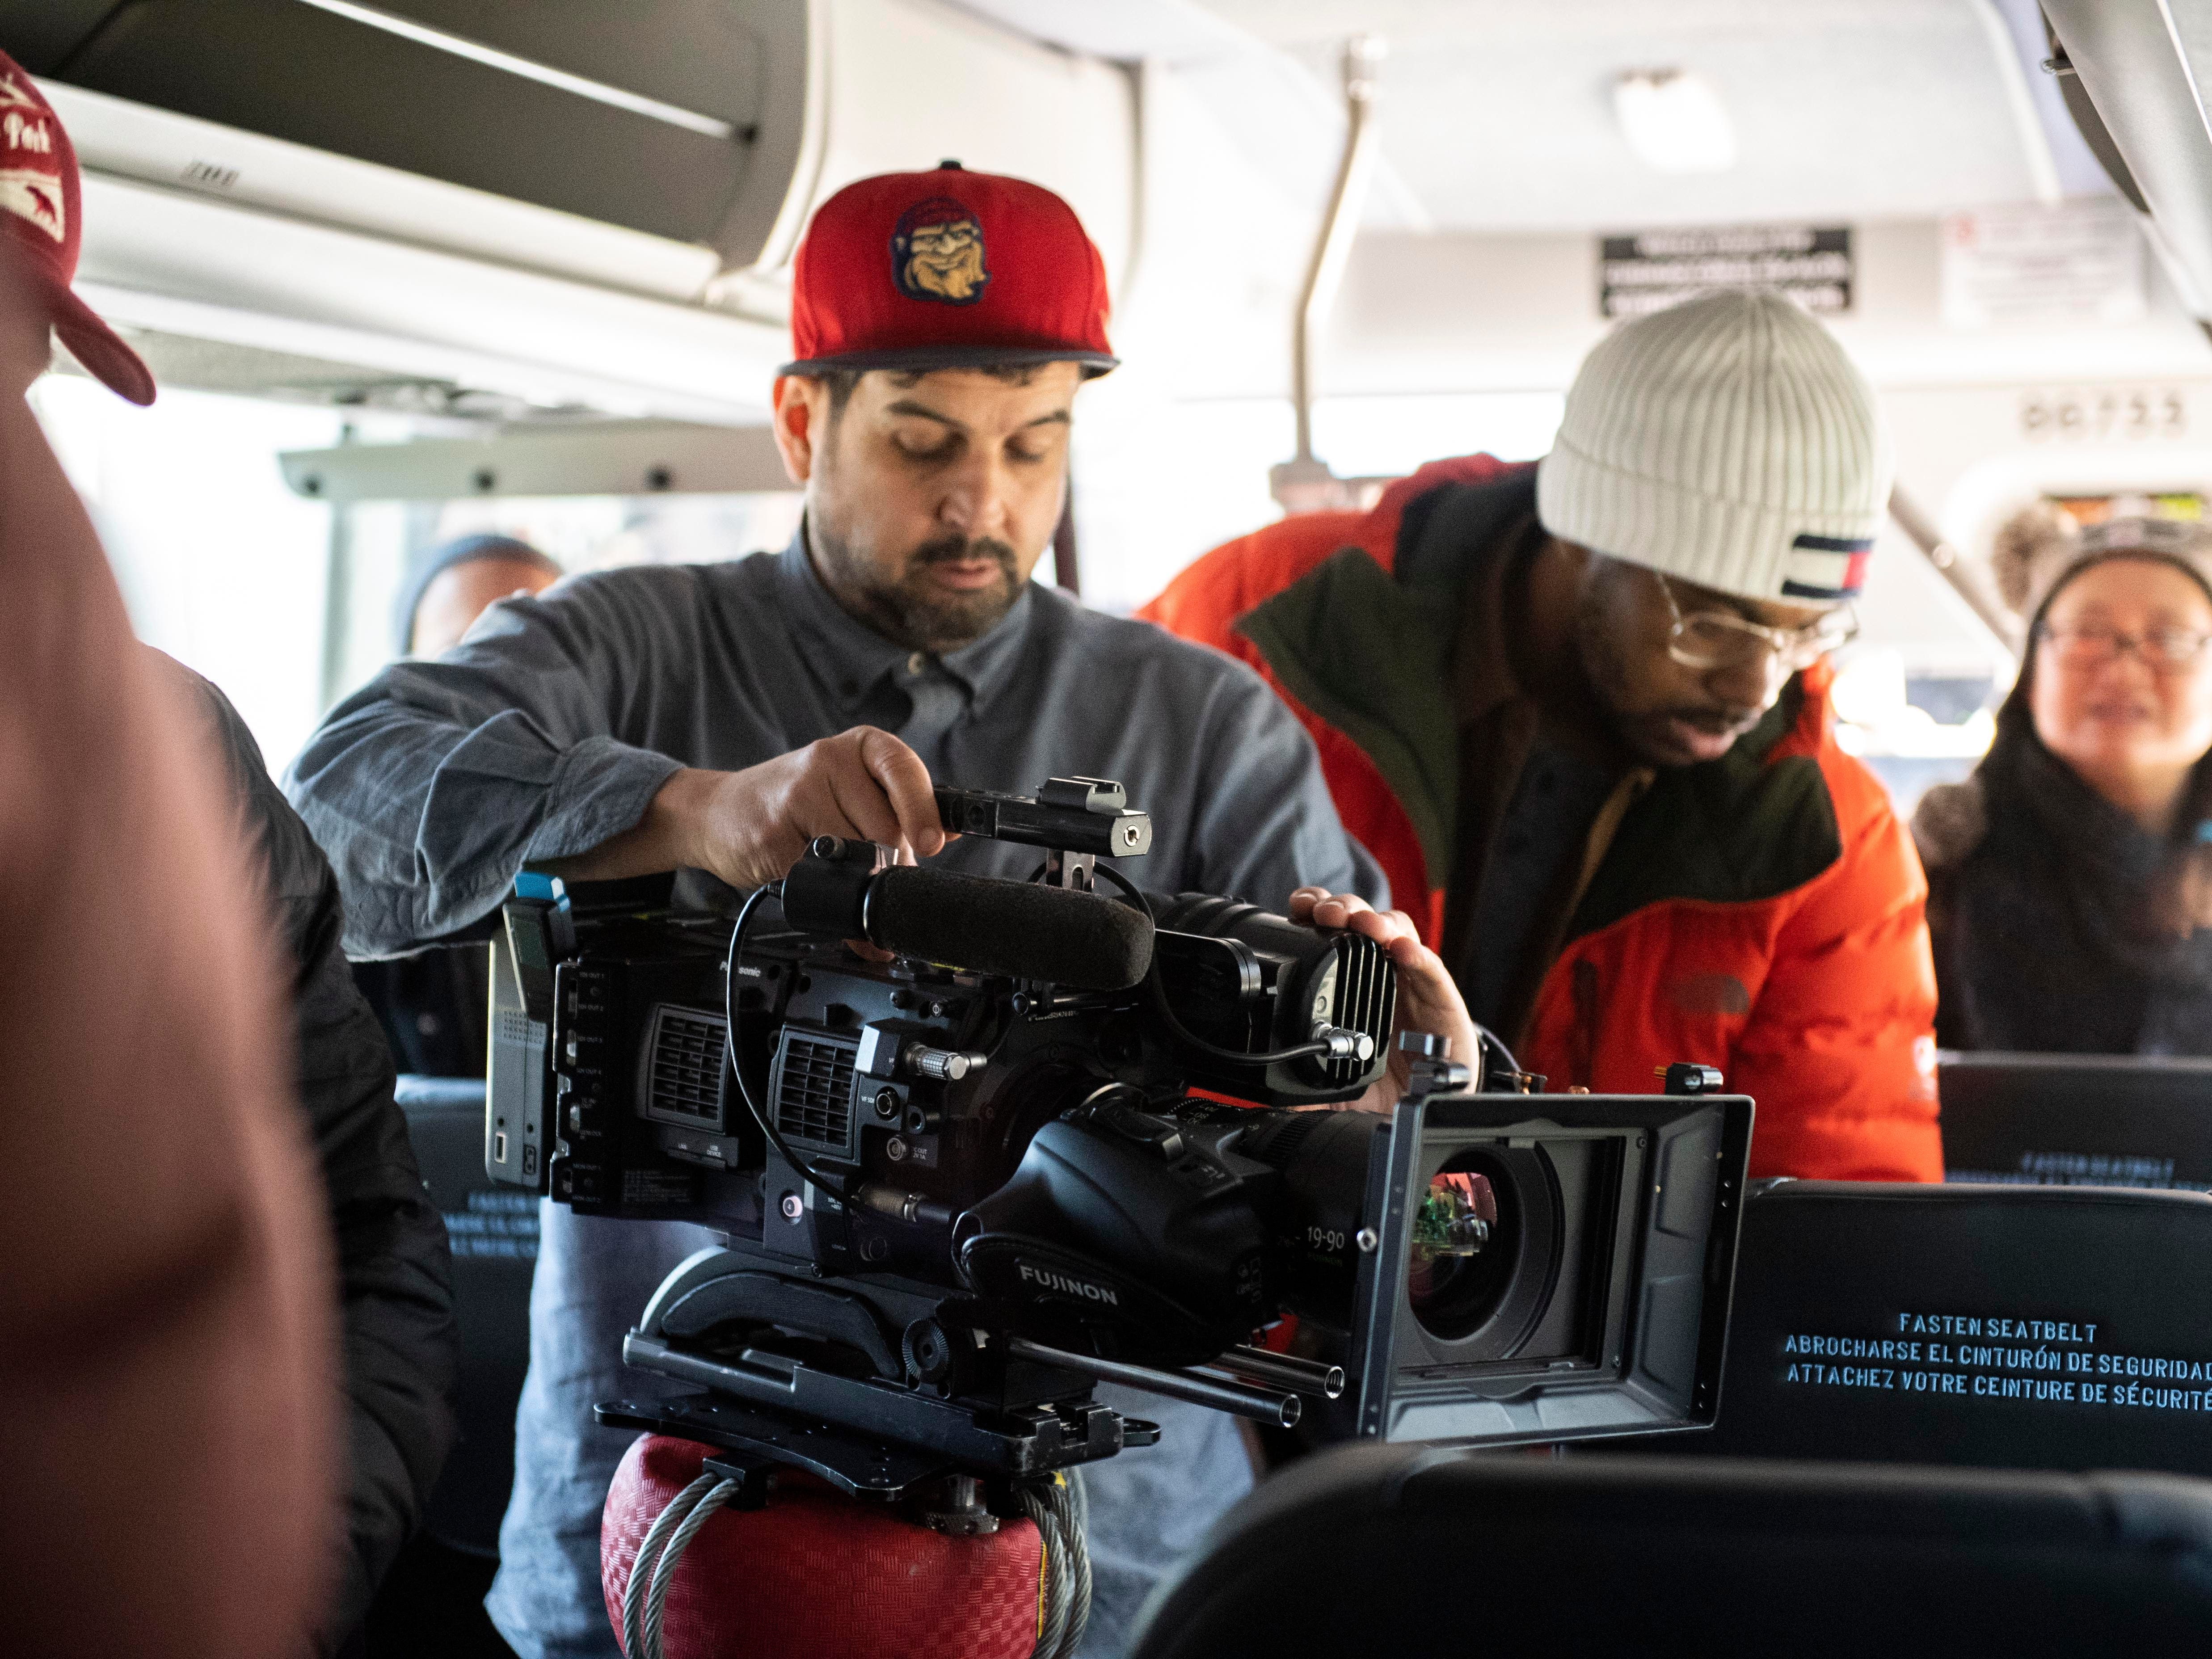 Video production crews working for ESPN set up their cameras on a Greyhound bus for an interview with Loretta Claiborne, Thursday, Nov. 29, 2018. Claiborne loves Greyhound buses, she said. The crew interviewed her while they drove to Gettysburg and back to York while working on a documentary for ESPN and the Special Olympics, celebrating 50 years of the Games.